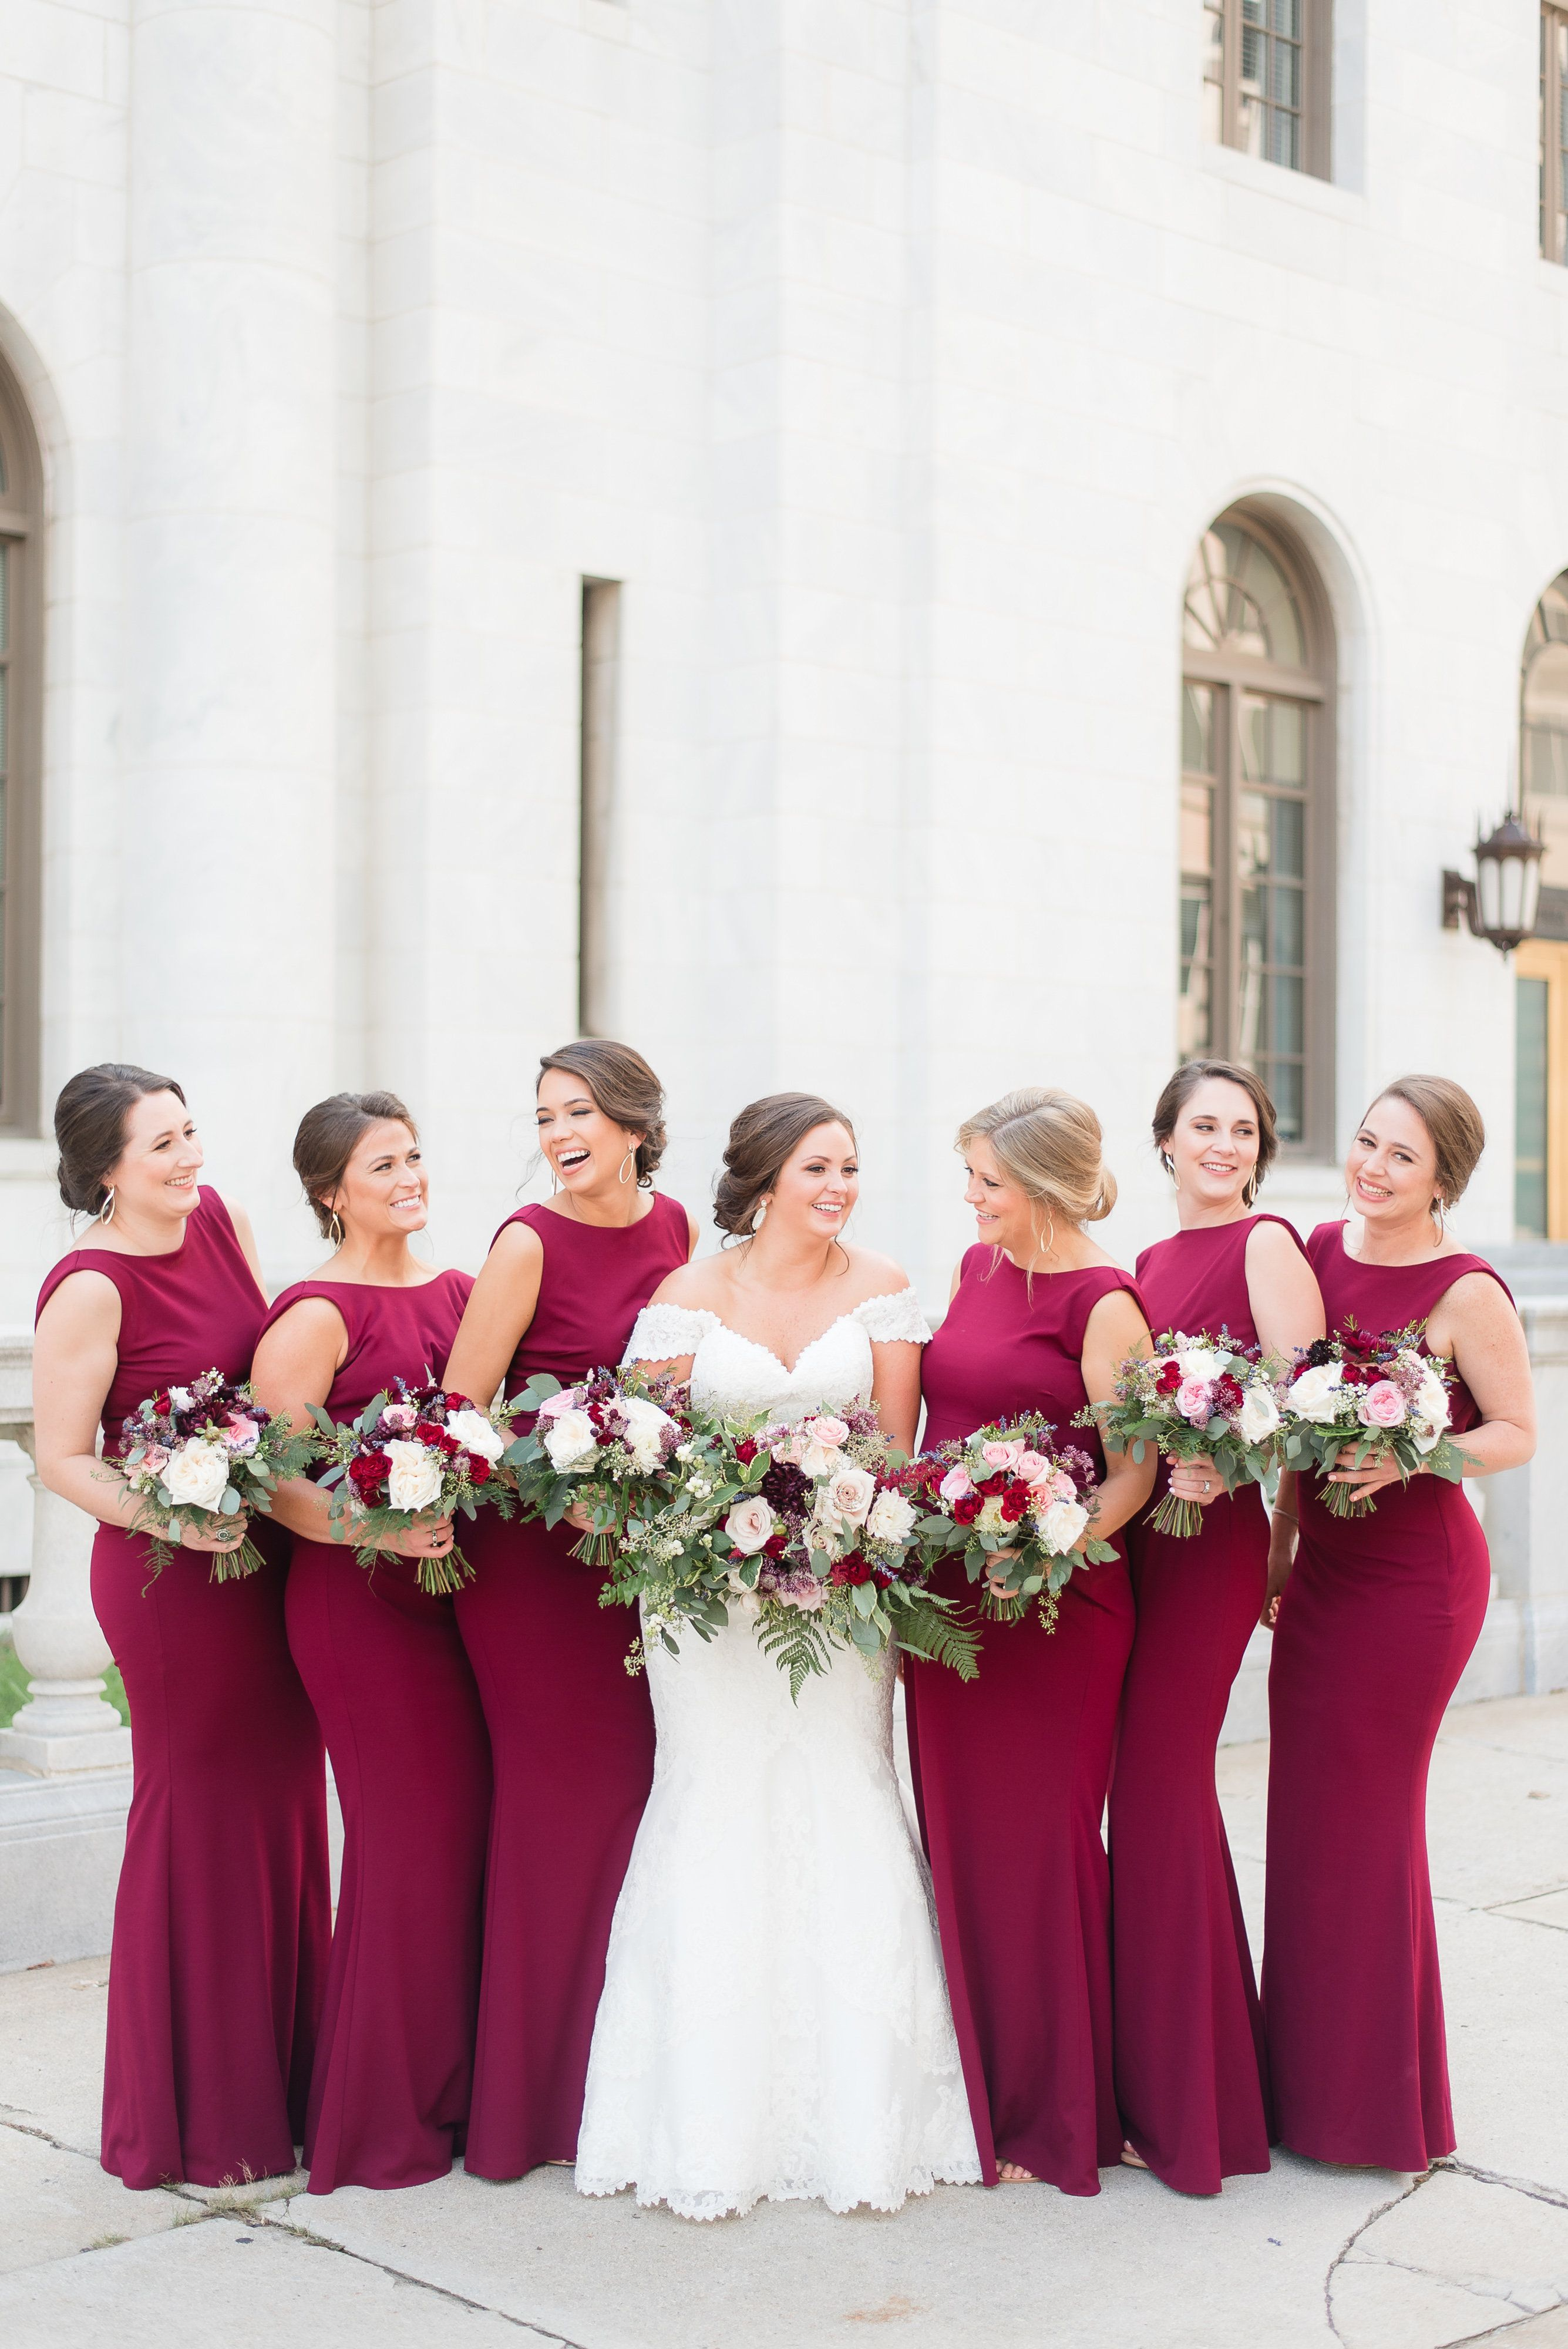 Bridesmaid bouquet red white pink bouquet red bridesmaids dresses bridesmaid bouquet red white pink bouquet red bridesmaids dresses burgundy and gold wedding ombrellifo Image collections